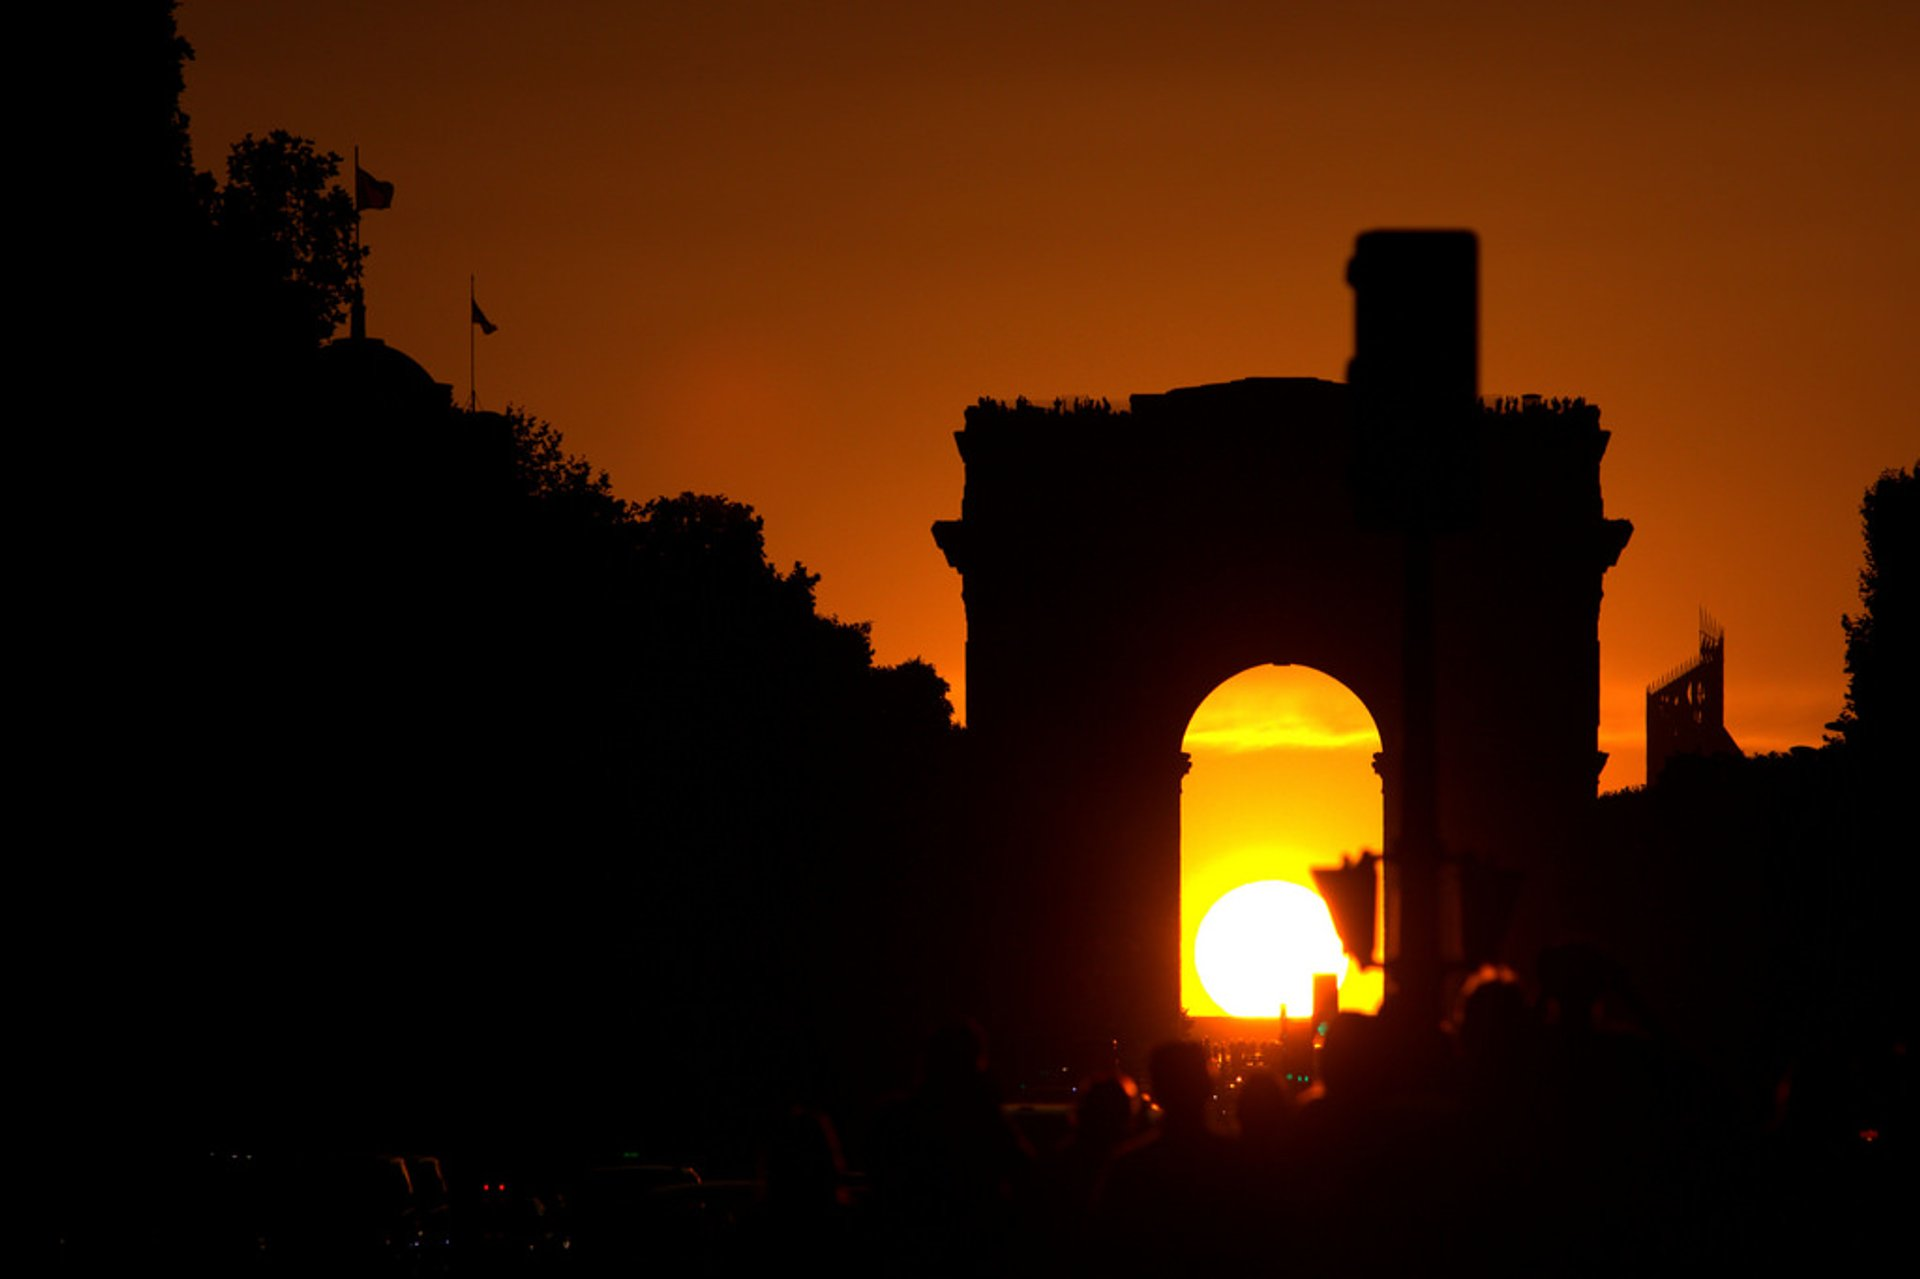 Sunset in the Arc de Triomphe in Paris - Best Season 2020